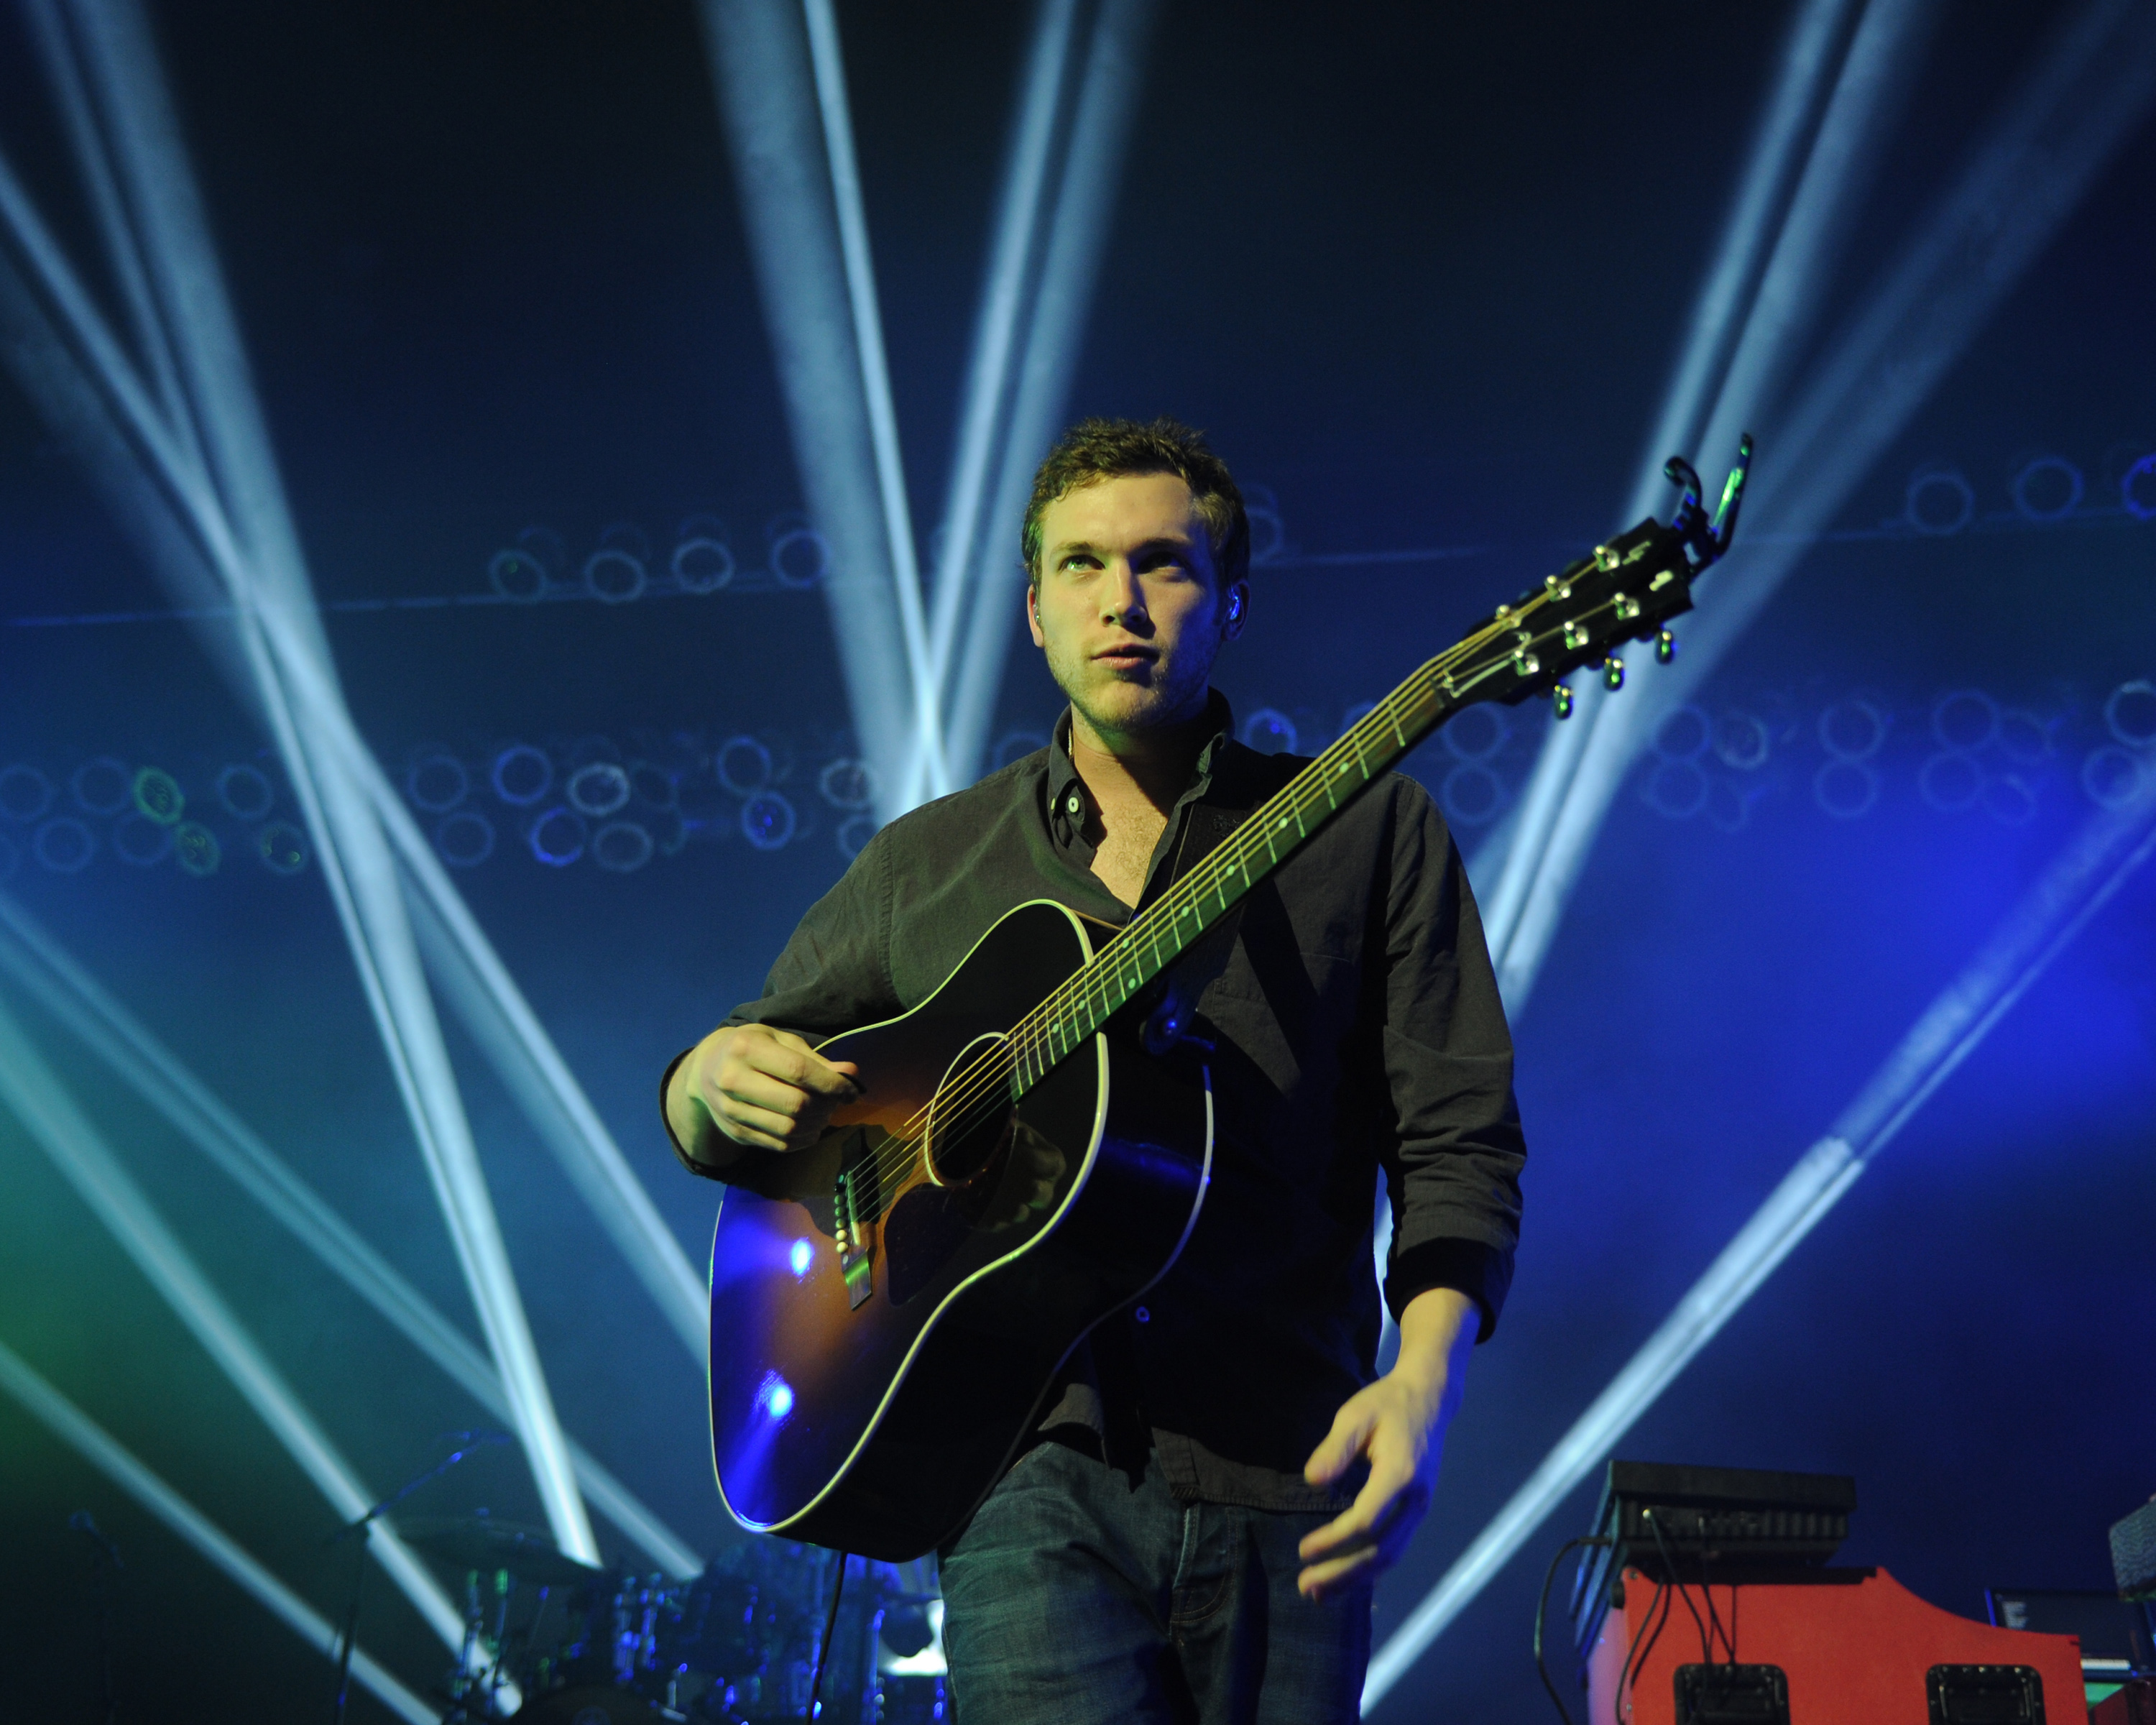 Phillip Phillips Seeks Break From 'Oppressive' 'American Idol' Producer